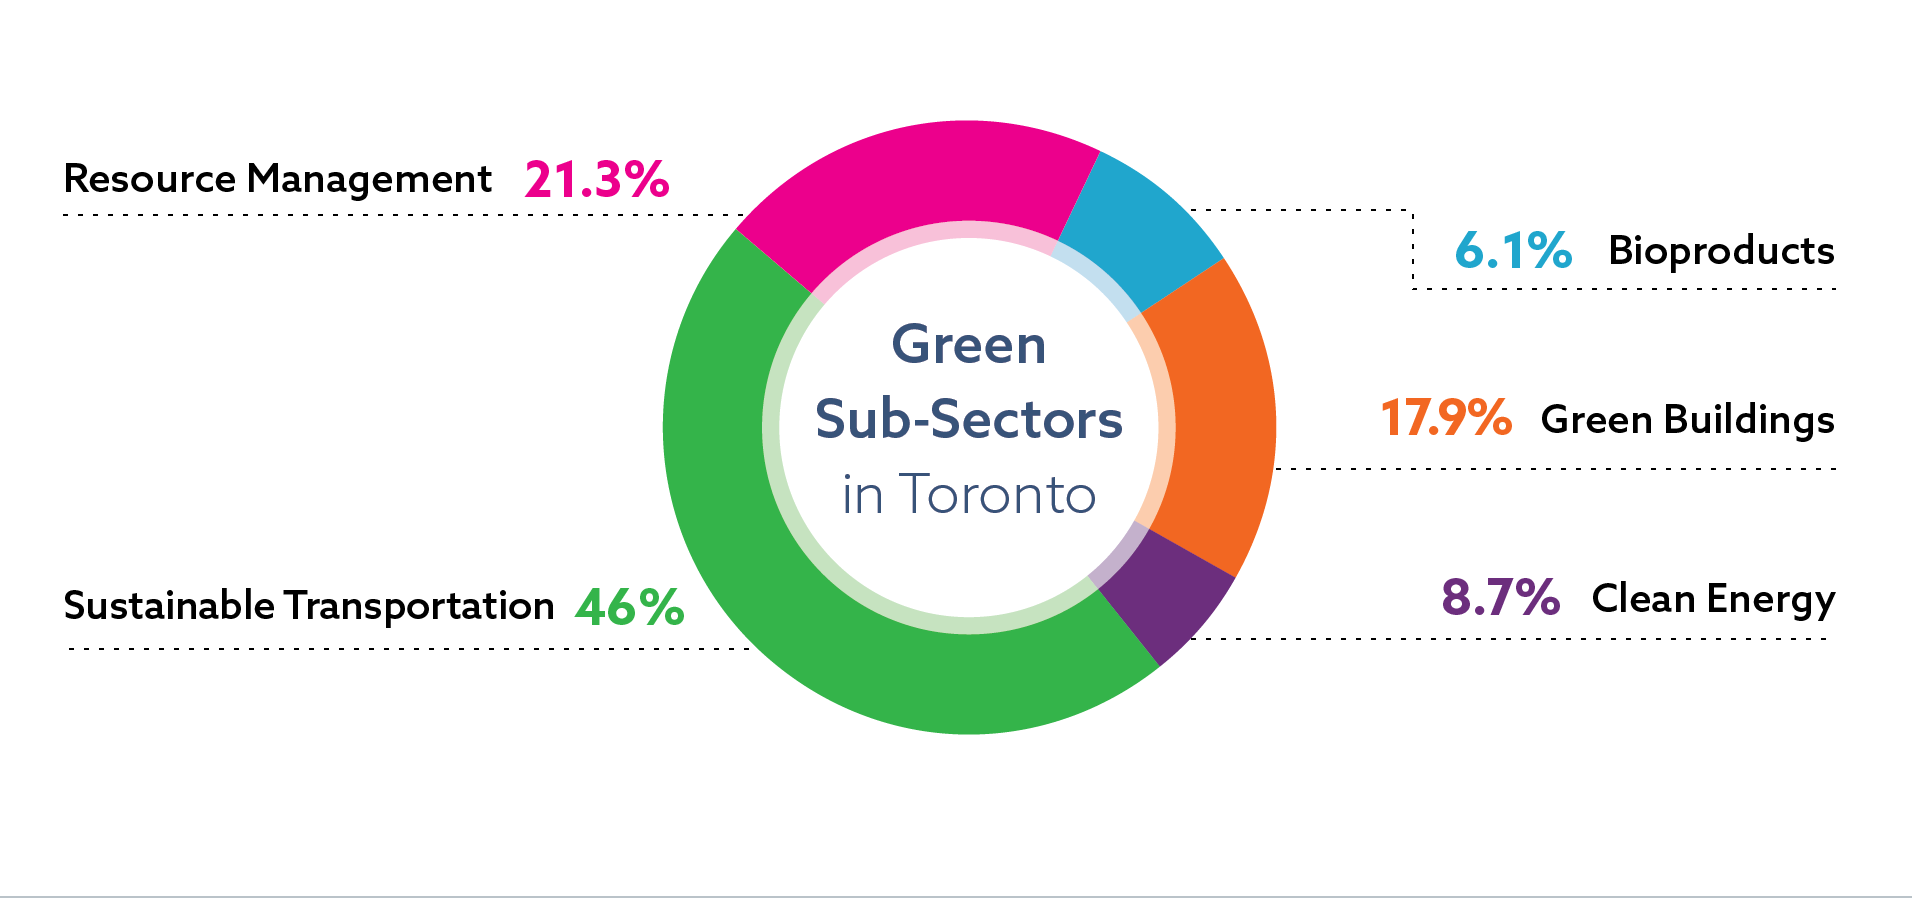 Distribution of jobs in the green sector in Toronto, by sub-sector: sustainable transportation 46 percent of sector jobs; resource management 21.3 percent of sector jobs; green buildings 17.9 percent of sector jobs; clean energy 8.7 percent of sector jobs; bioproducts 6.1 percent of sector jobs